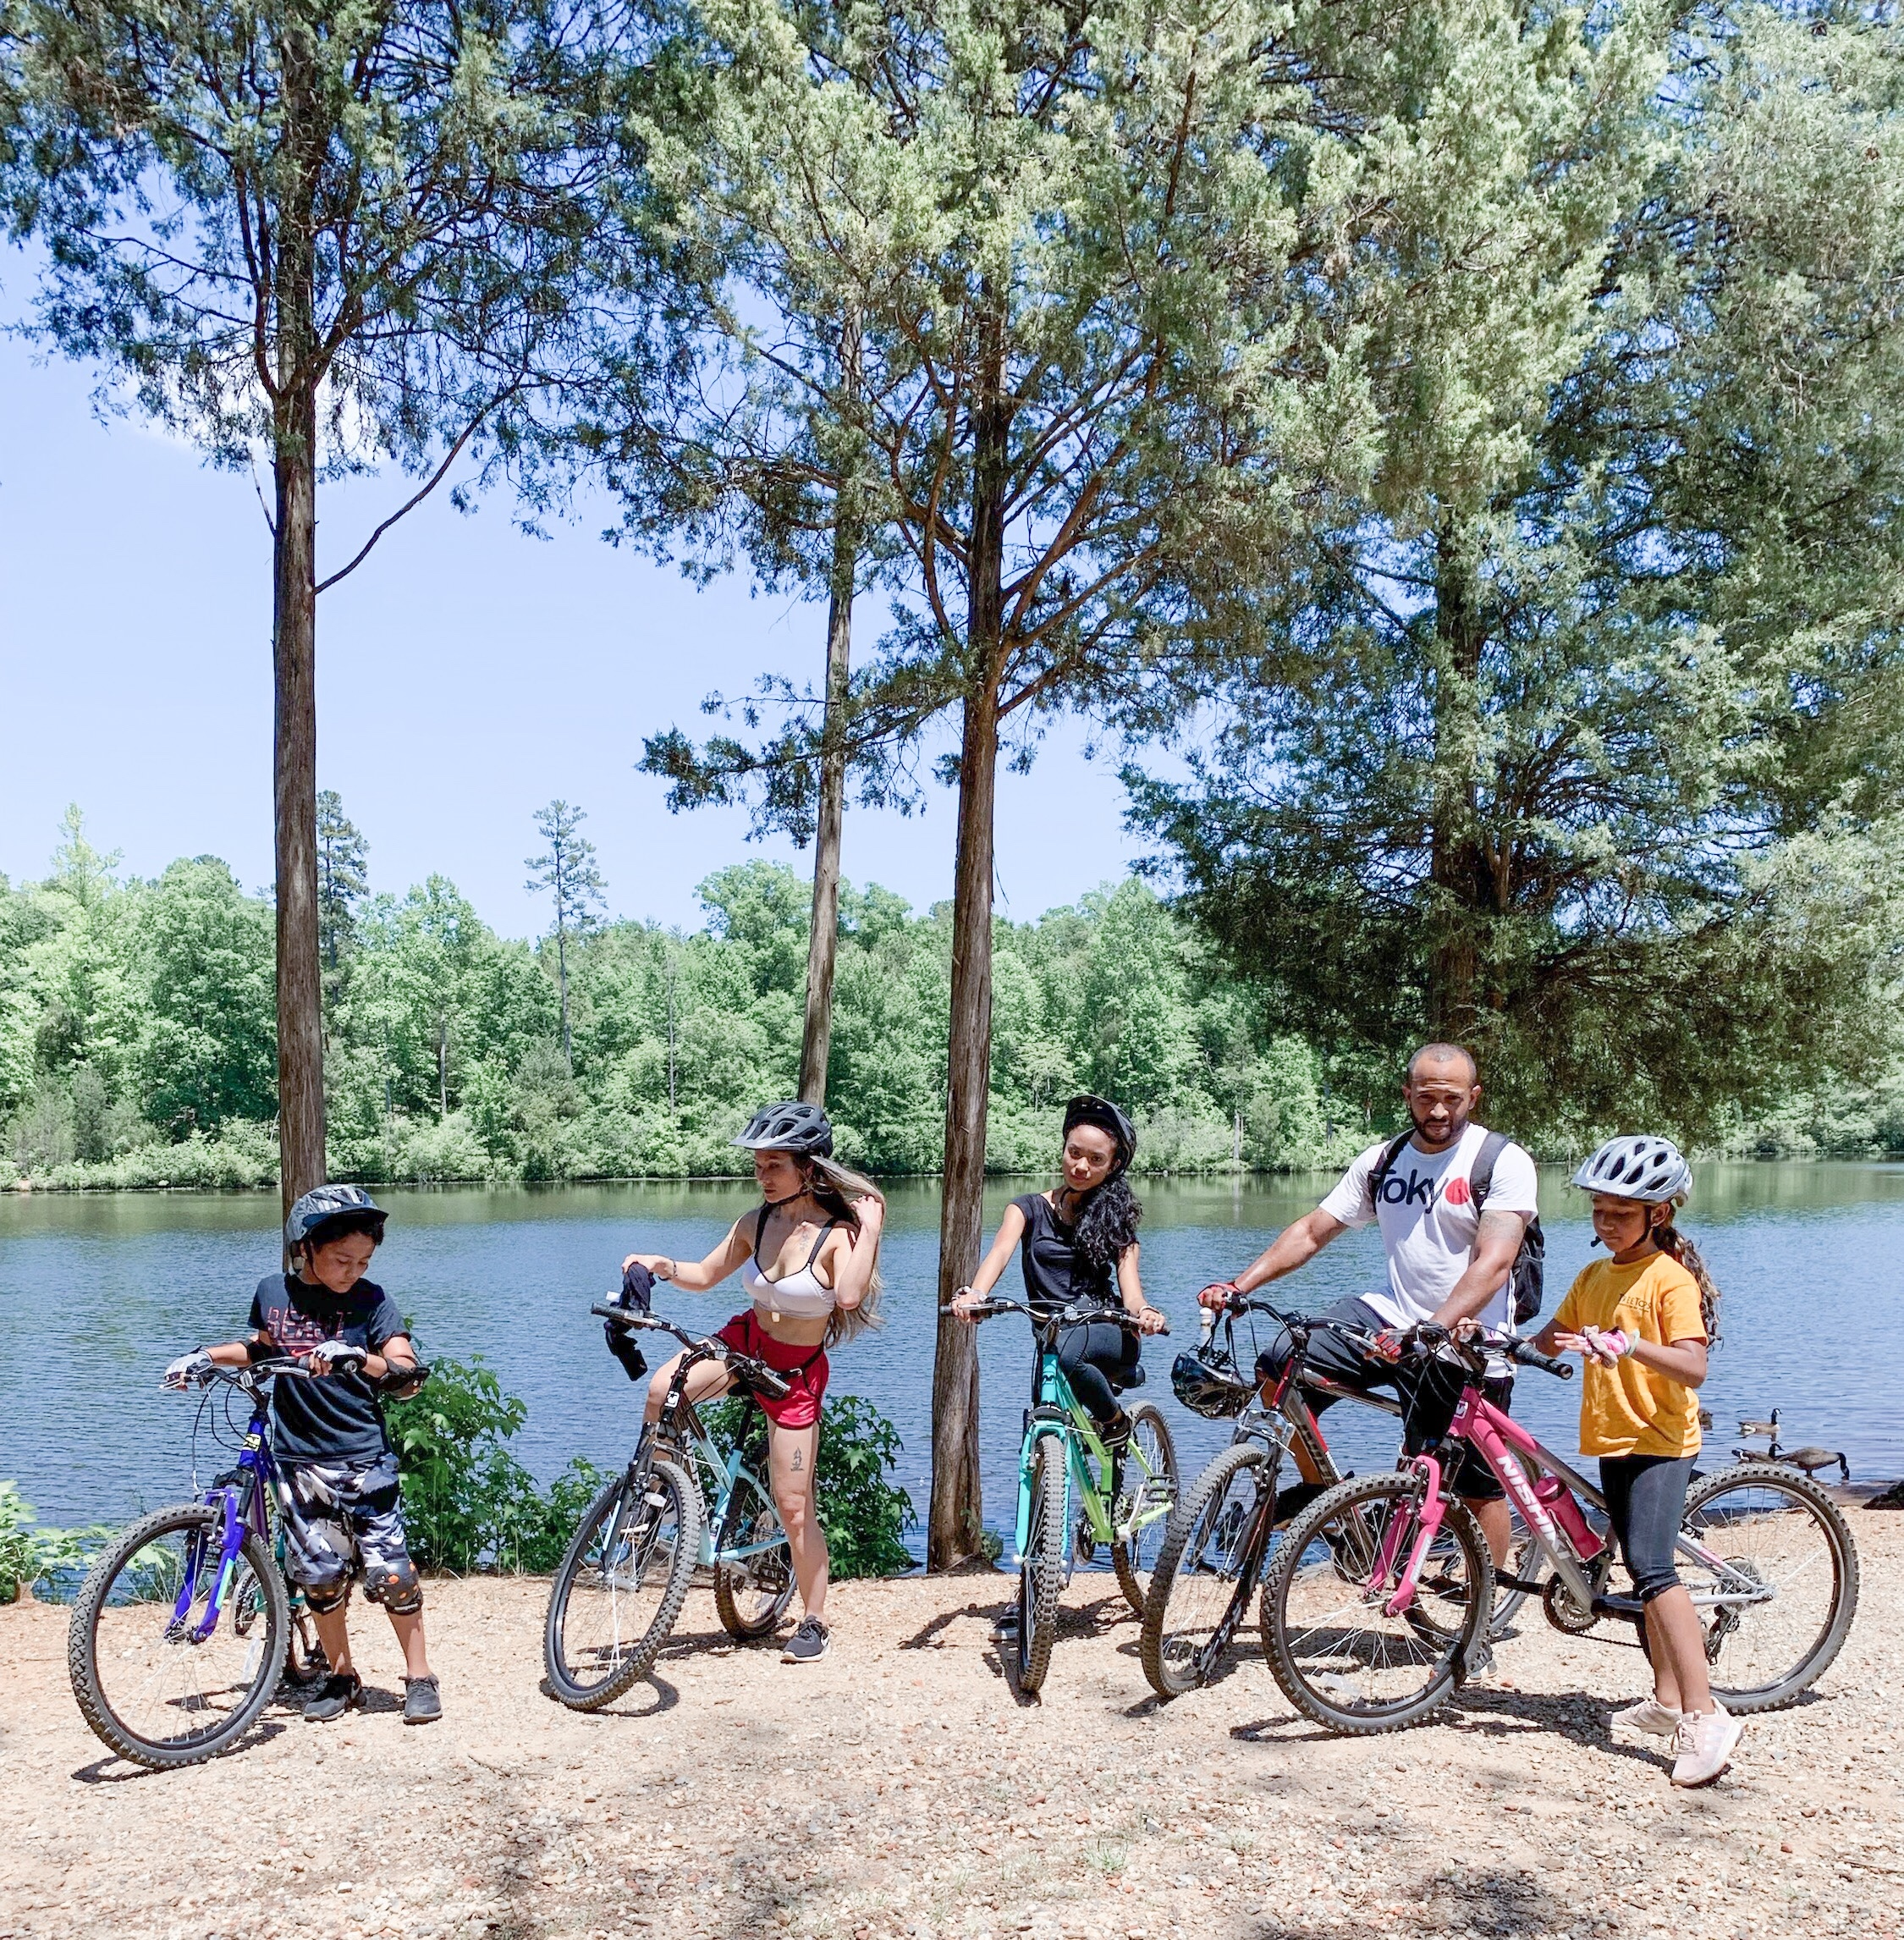 50 free things to do this summer in charlotte, bike trails in Charlotte,